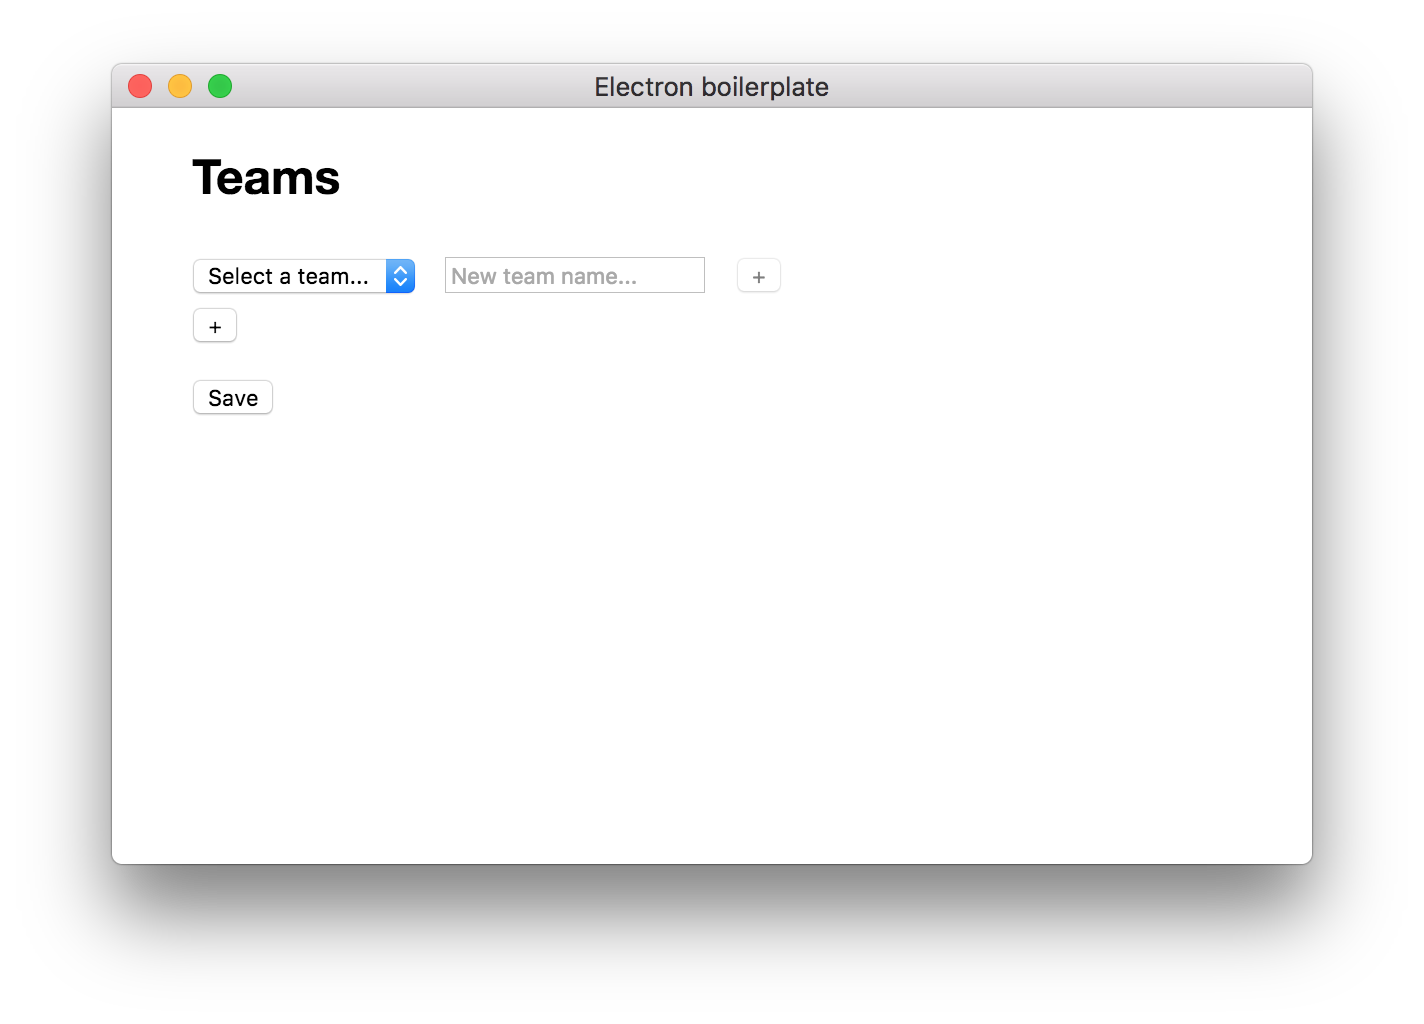 The team management screen, with options to select or add a team